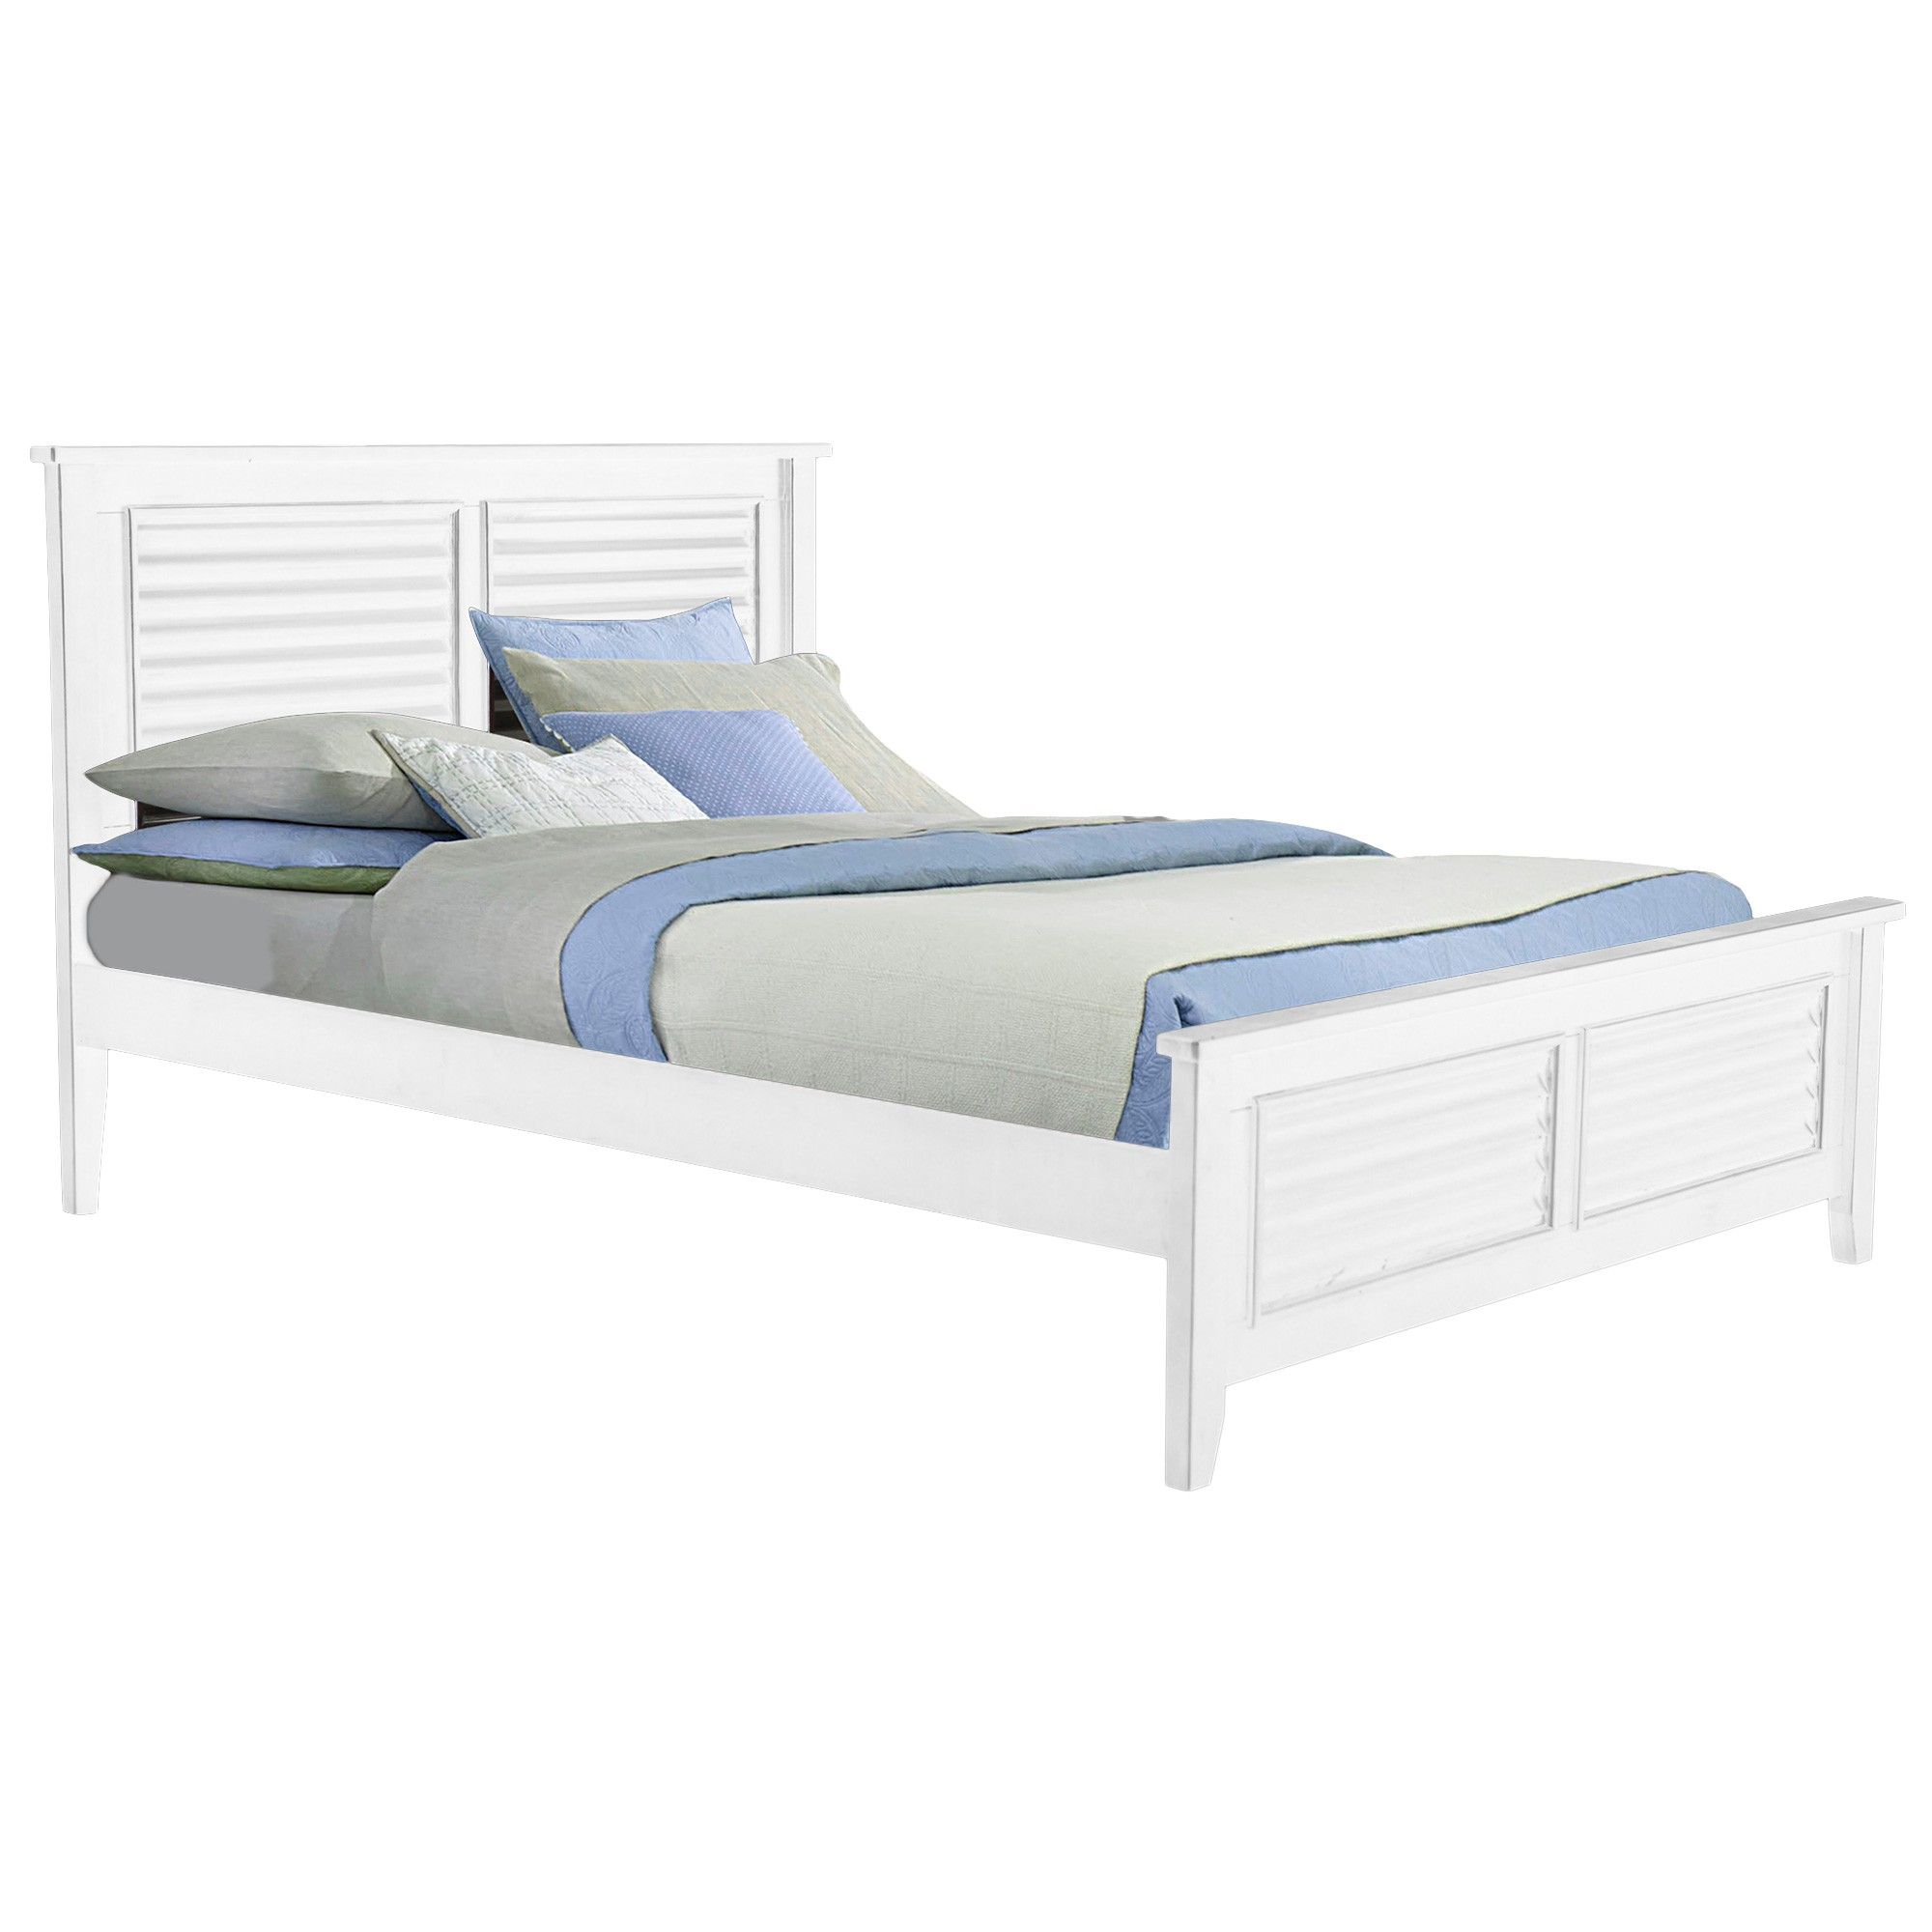 Venice Wooden Bed, Queen, White